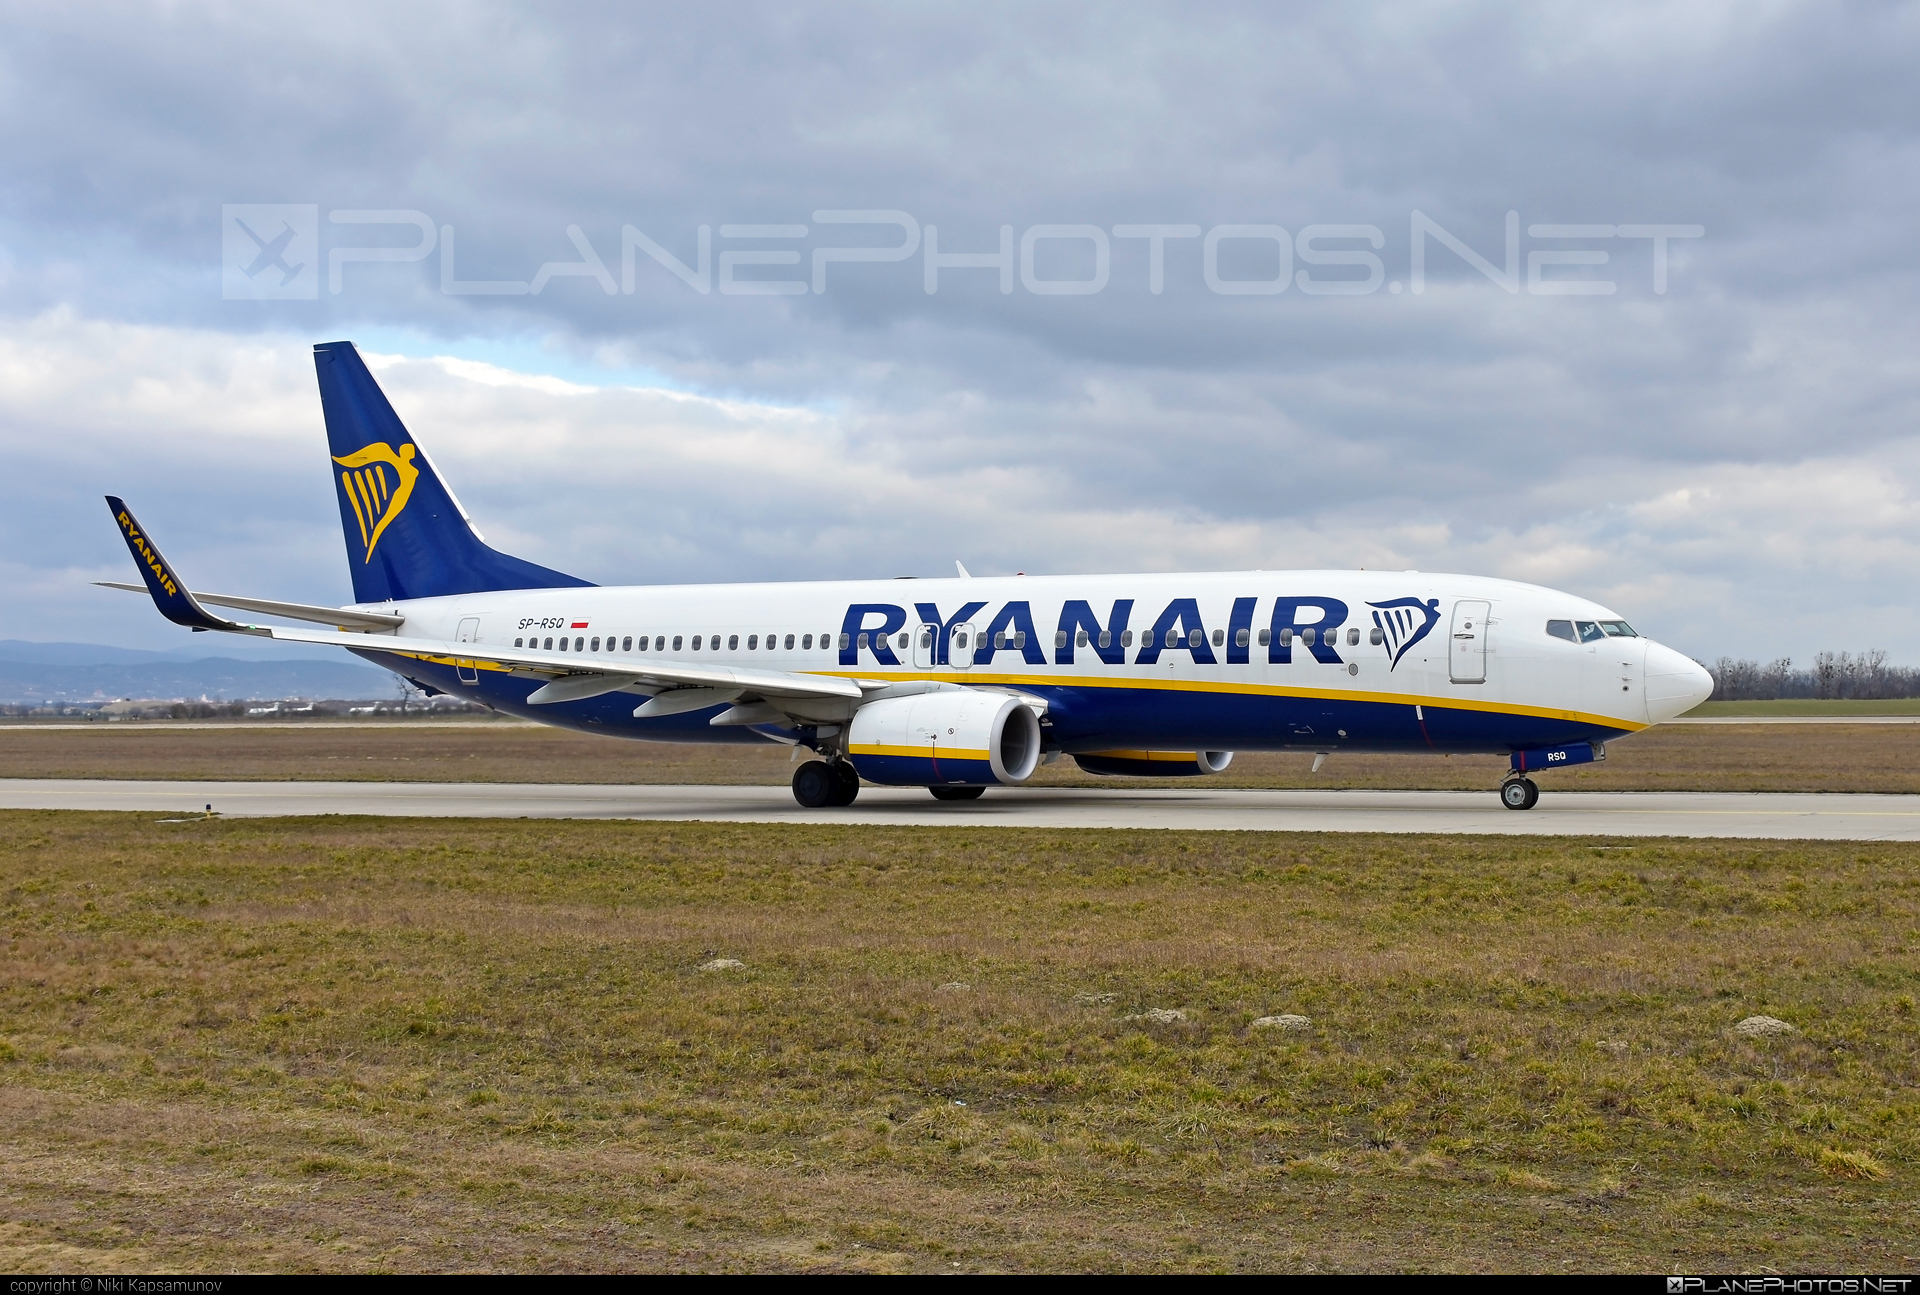 Boeing 737-800 - SP-RSQ operated by Ryanair Sun #b737 #b737nextgen #b737ng #boeing #boeing737 #ryanair #ryanairsun